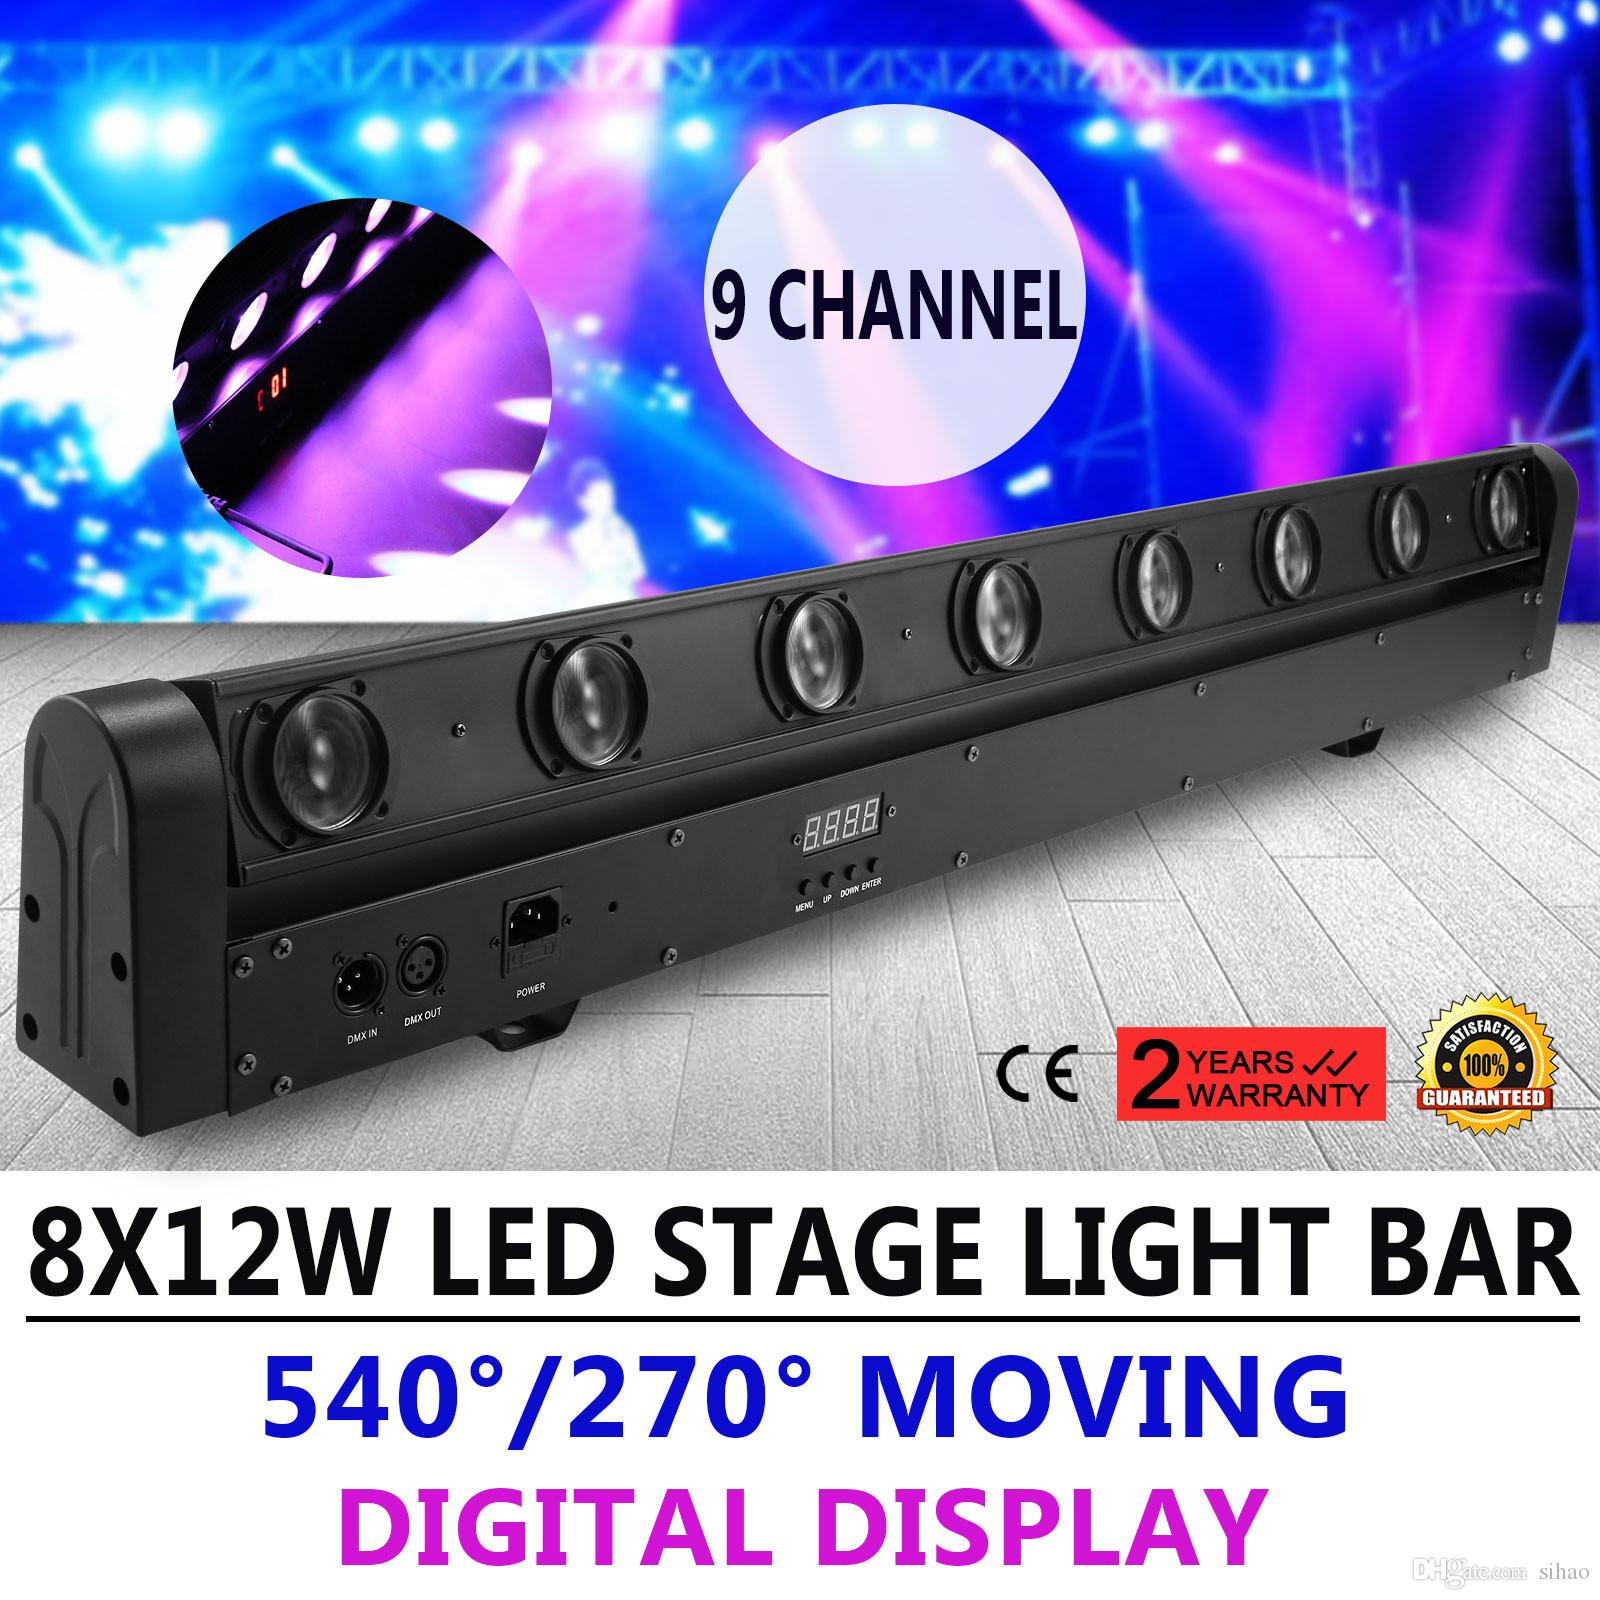 8x12w 4in1 Beam Led Bar Dmx Moving Head Stage Light Wedding Automatic Rotation Stage Led Led Stage Lighting Packages From Sihao $120.61| Dhgate.Com  sc 1 st  DHgate.com & 8x12w 4in1 Beam Led Bar Dmx Moving Head Stage Light Wedding ... azcodes.com